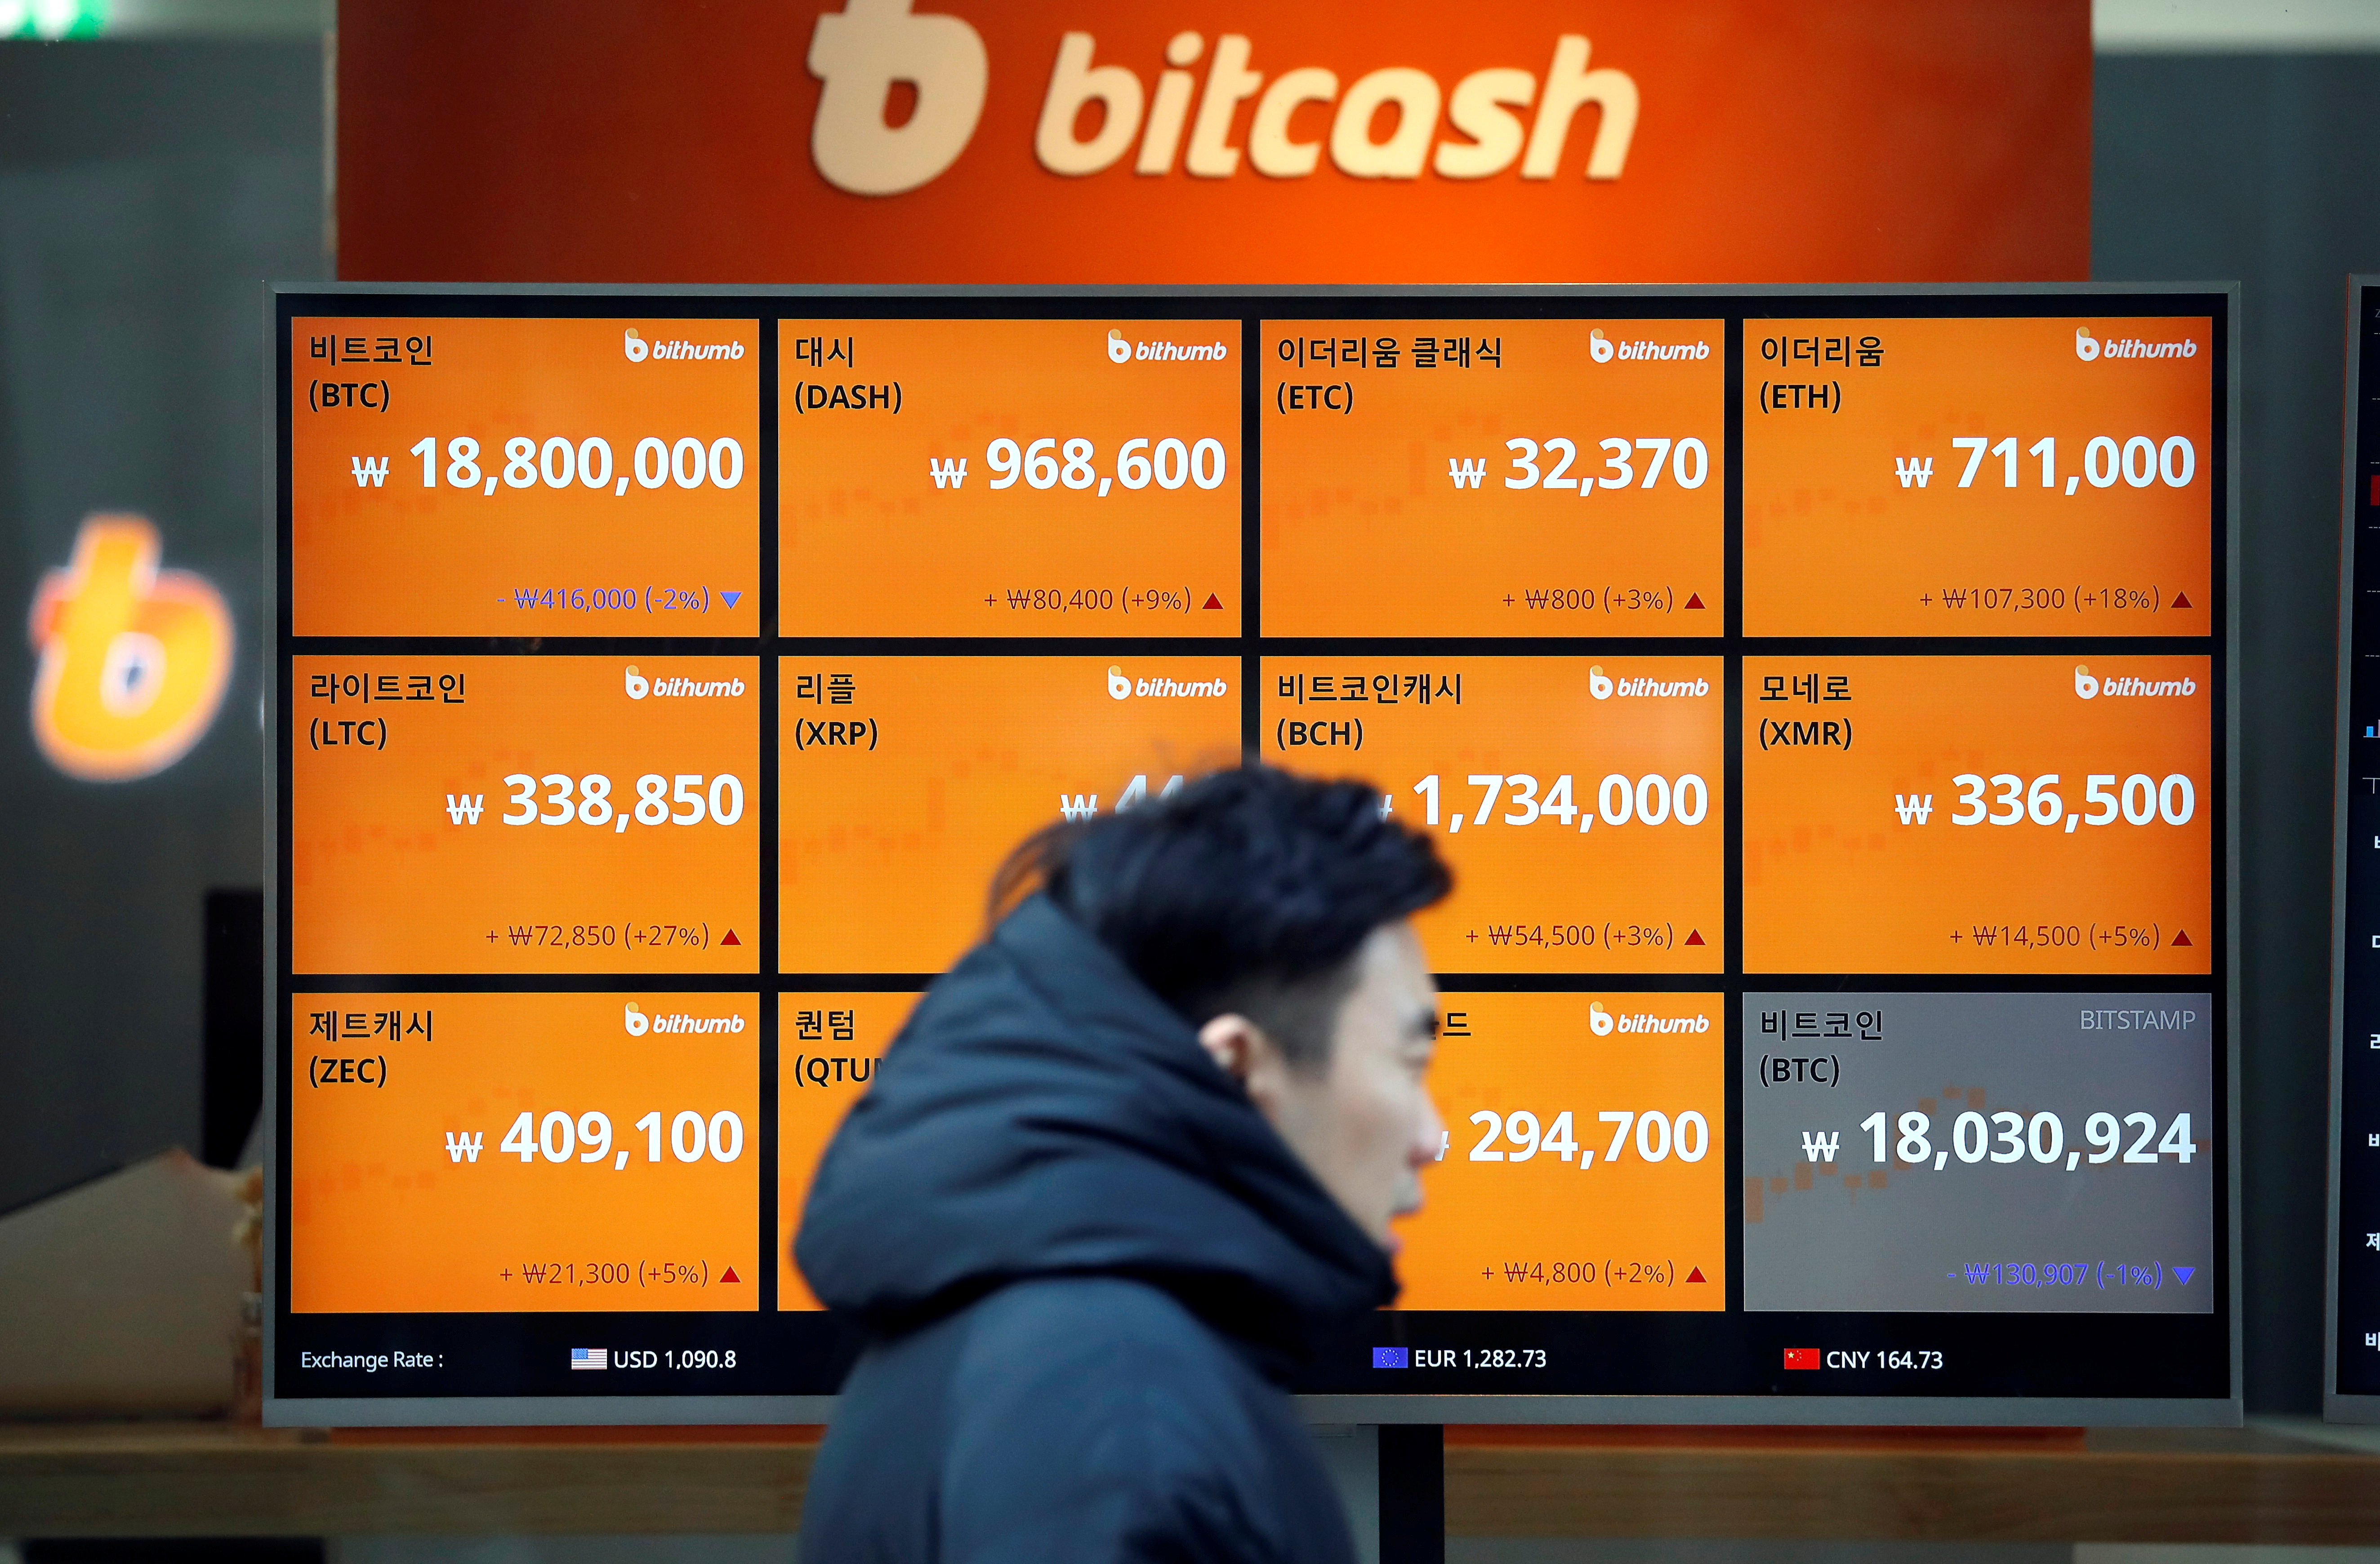 A man walks past an electric board showing exchange rates of various cryptocurrencies including Bitcoin (top L) at a cryptocurrencies exchange in Seoul